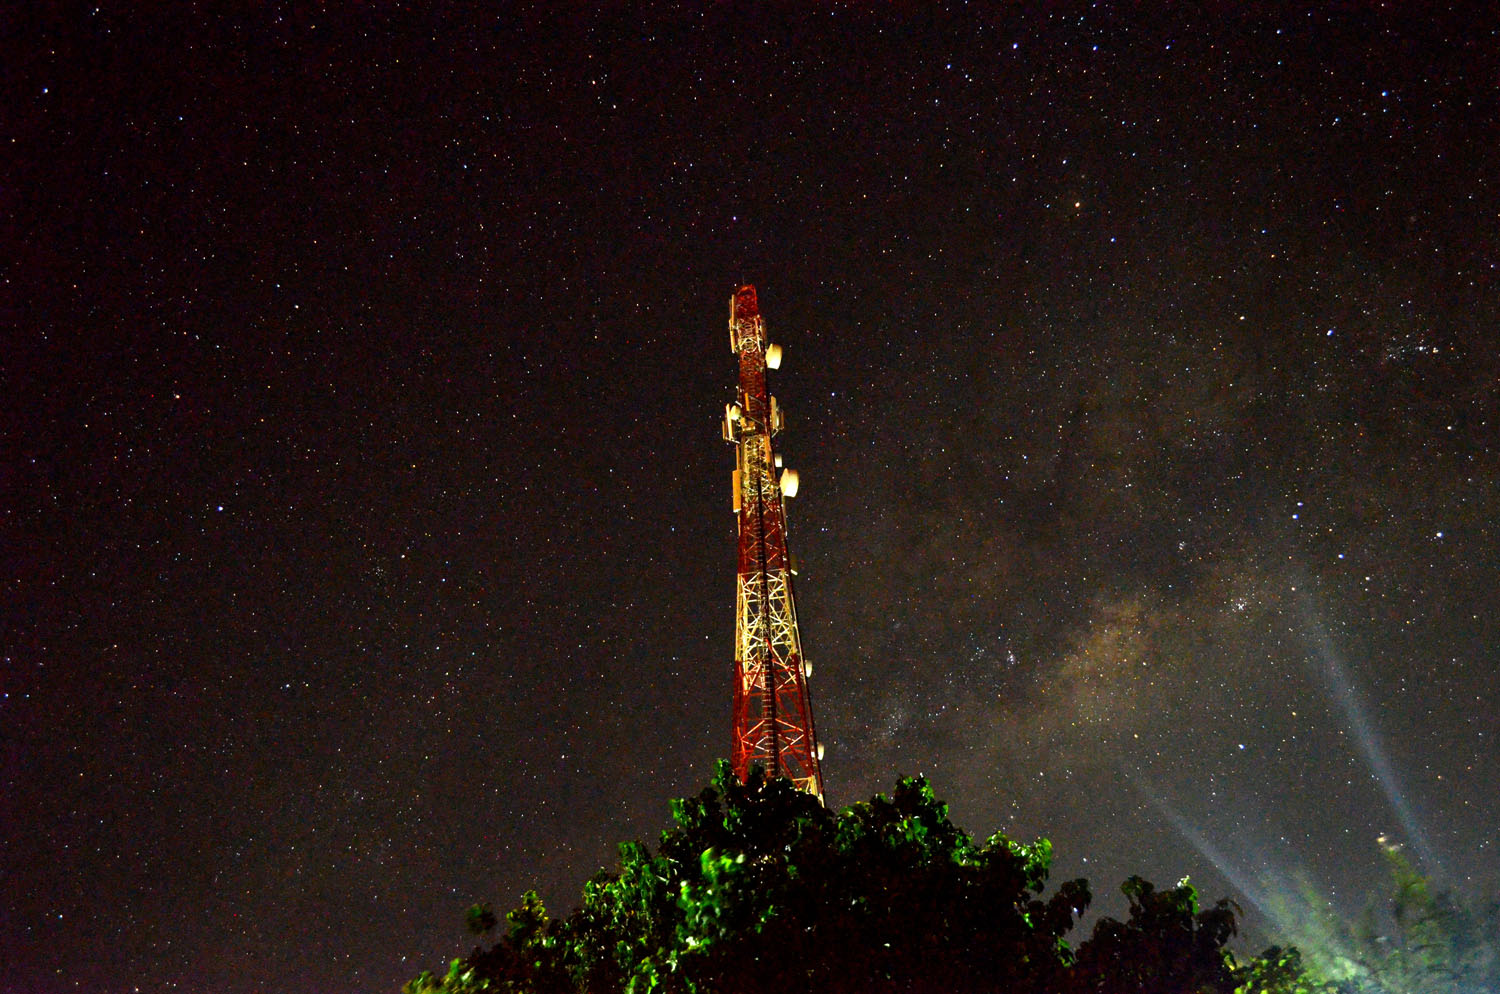 Milky Way Behind the Tower